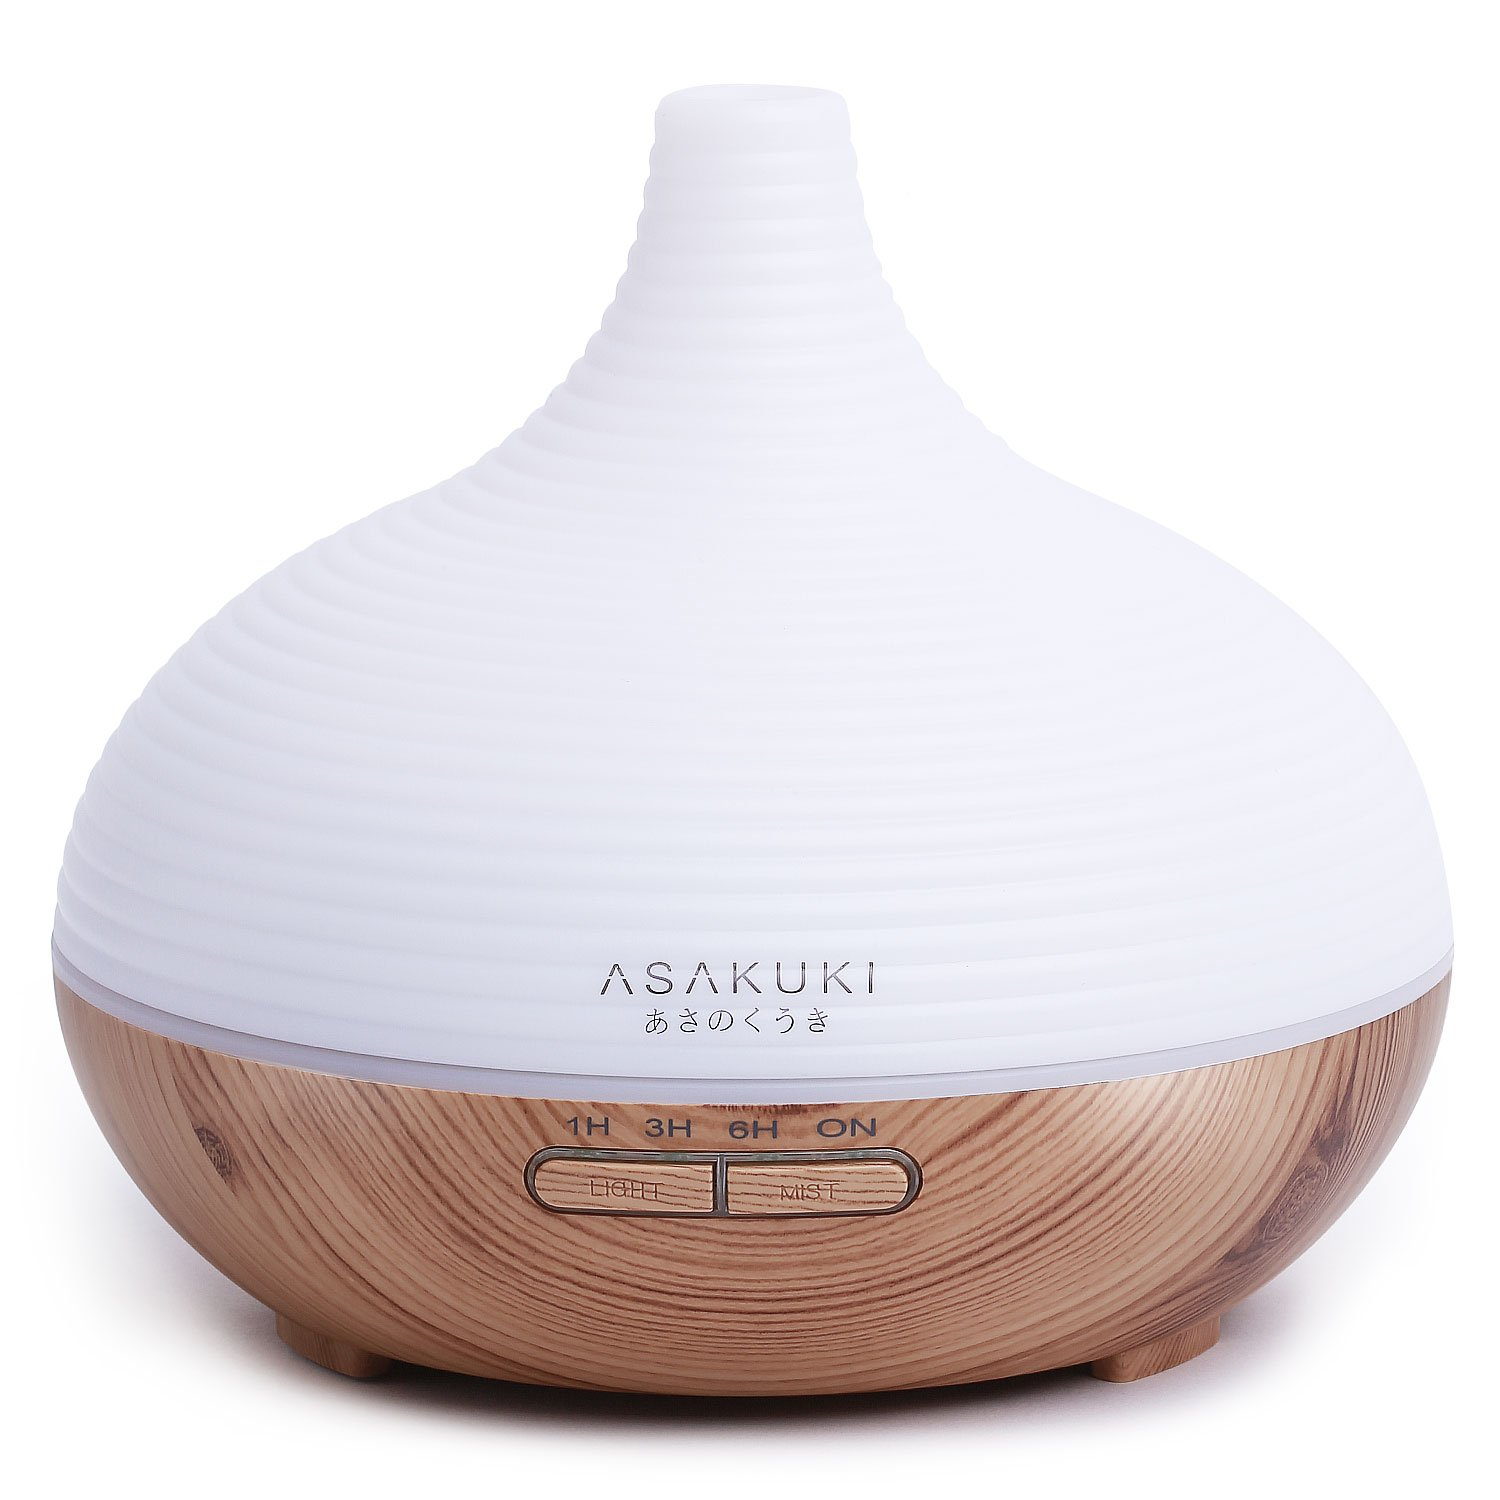 ASAKUKI 300ML Premium, Essential Oil Diffuser, Quiet 5-In-1 Humidifier, Natural Home Fragrance Diffuser with 7 LED Color Changing Light by ASAKUKI